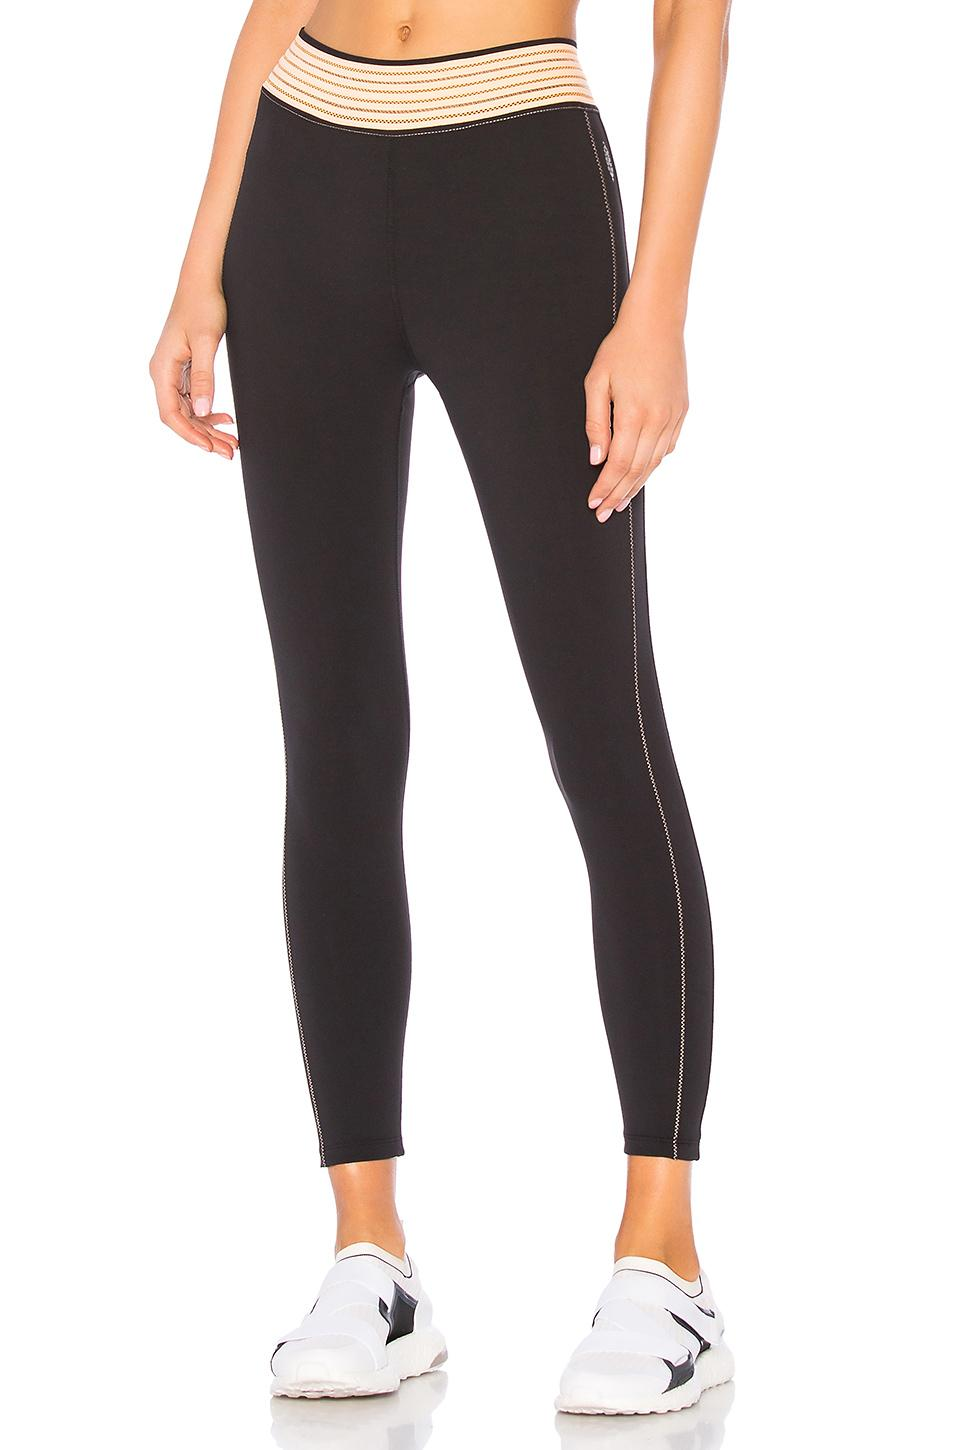 Free People Movement Practice Makes Perfect Legging In Black